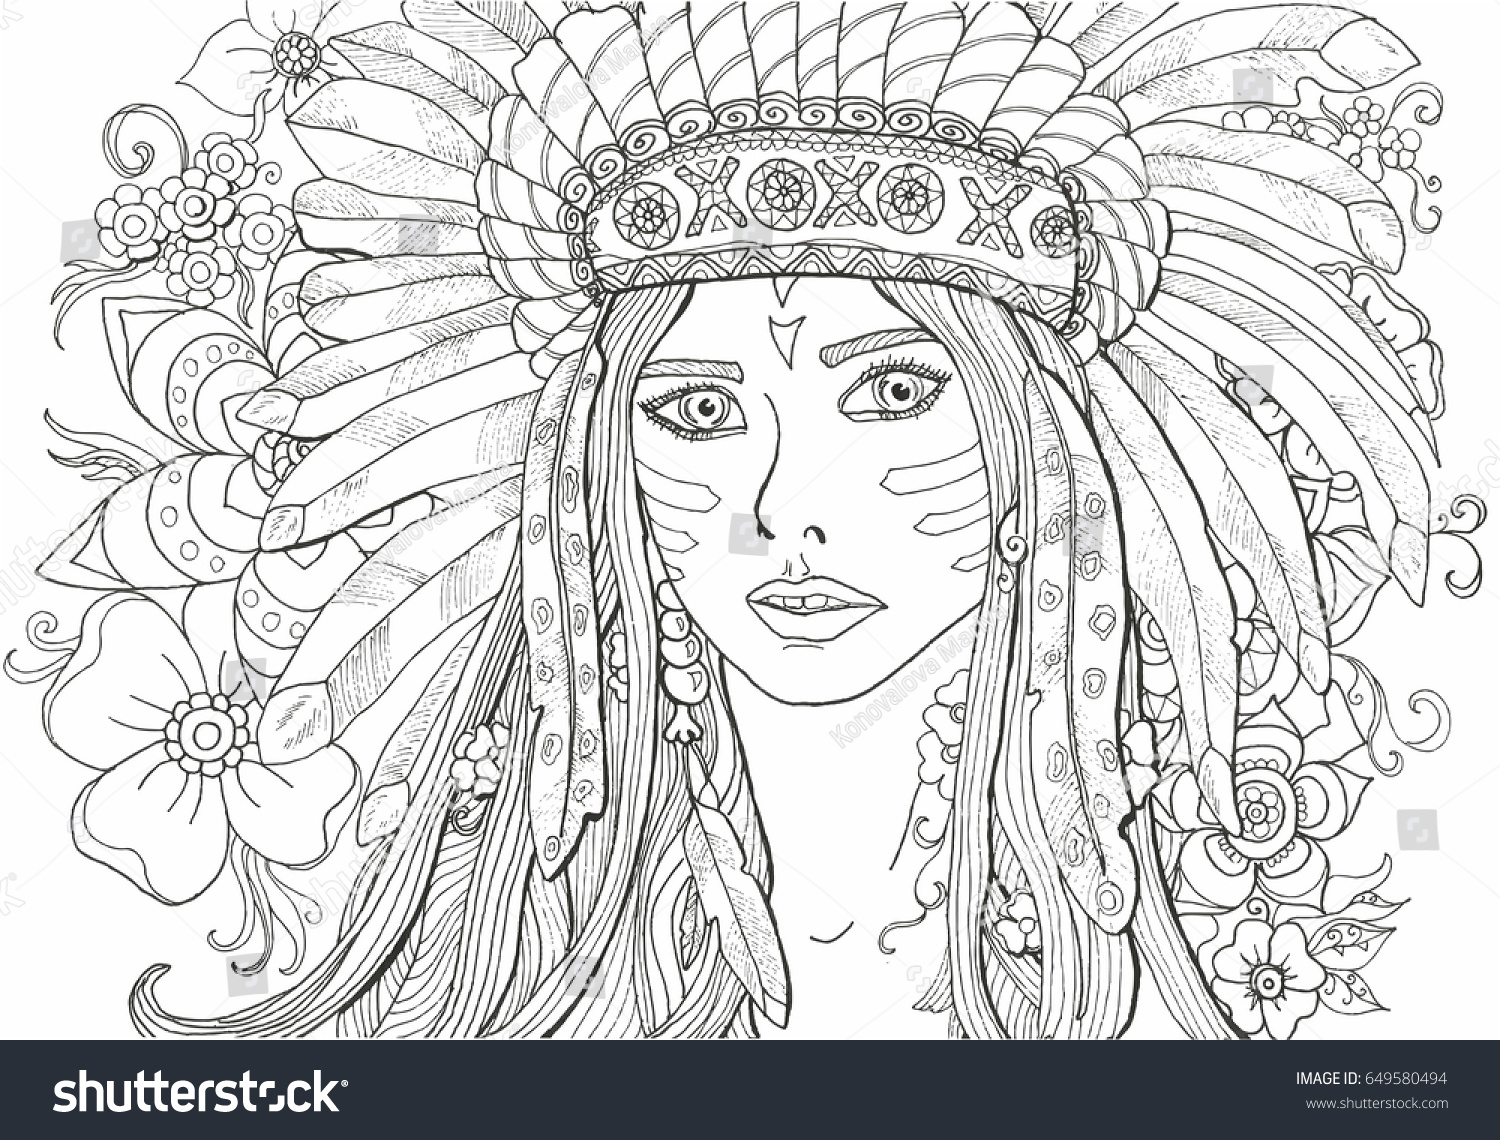 coloring pages for adults girl indian with decoration of feathers - Girl Indian Coloring Pages